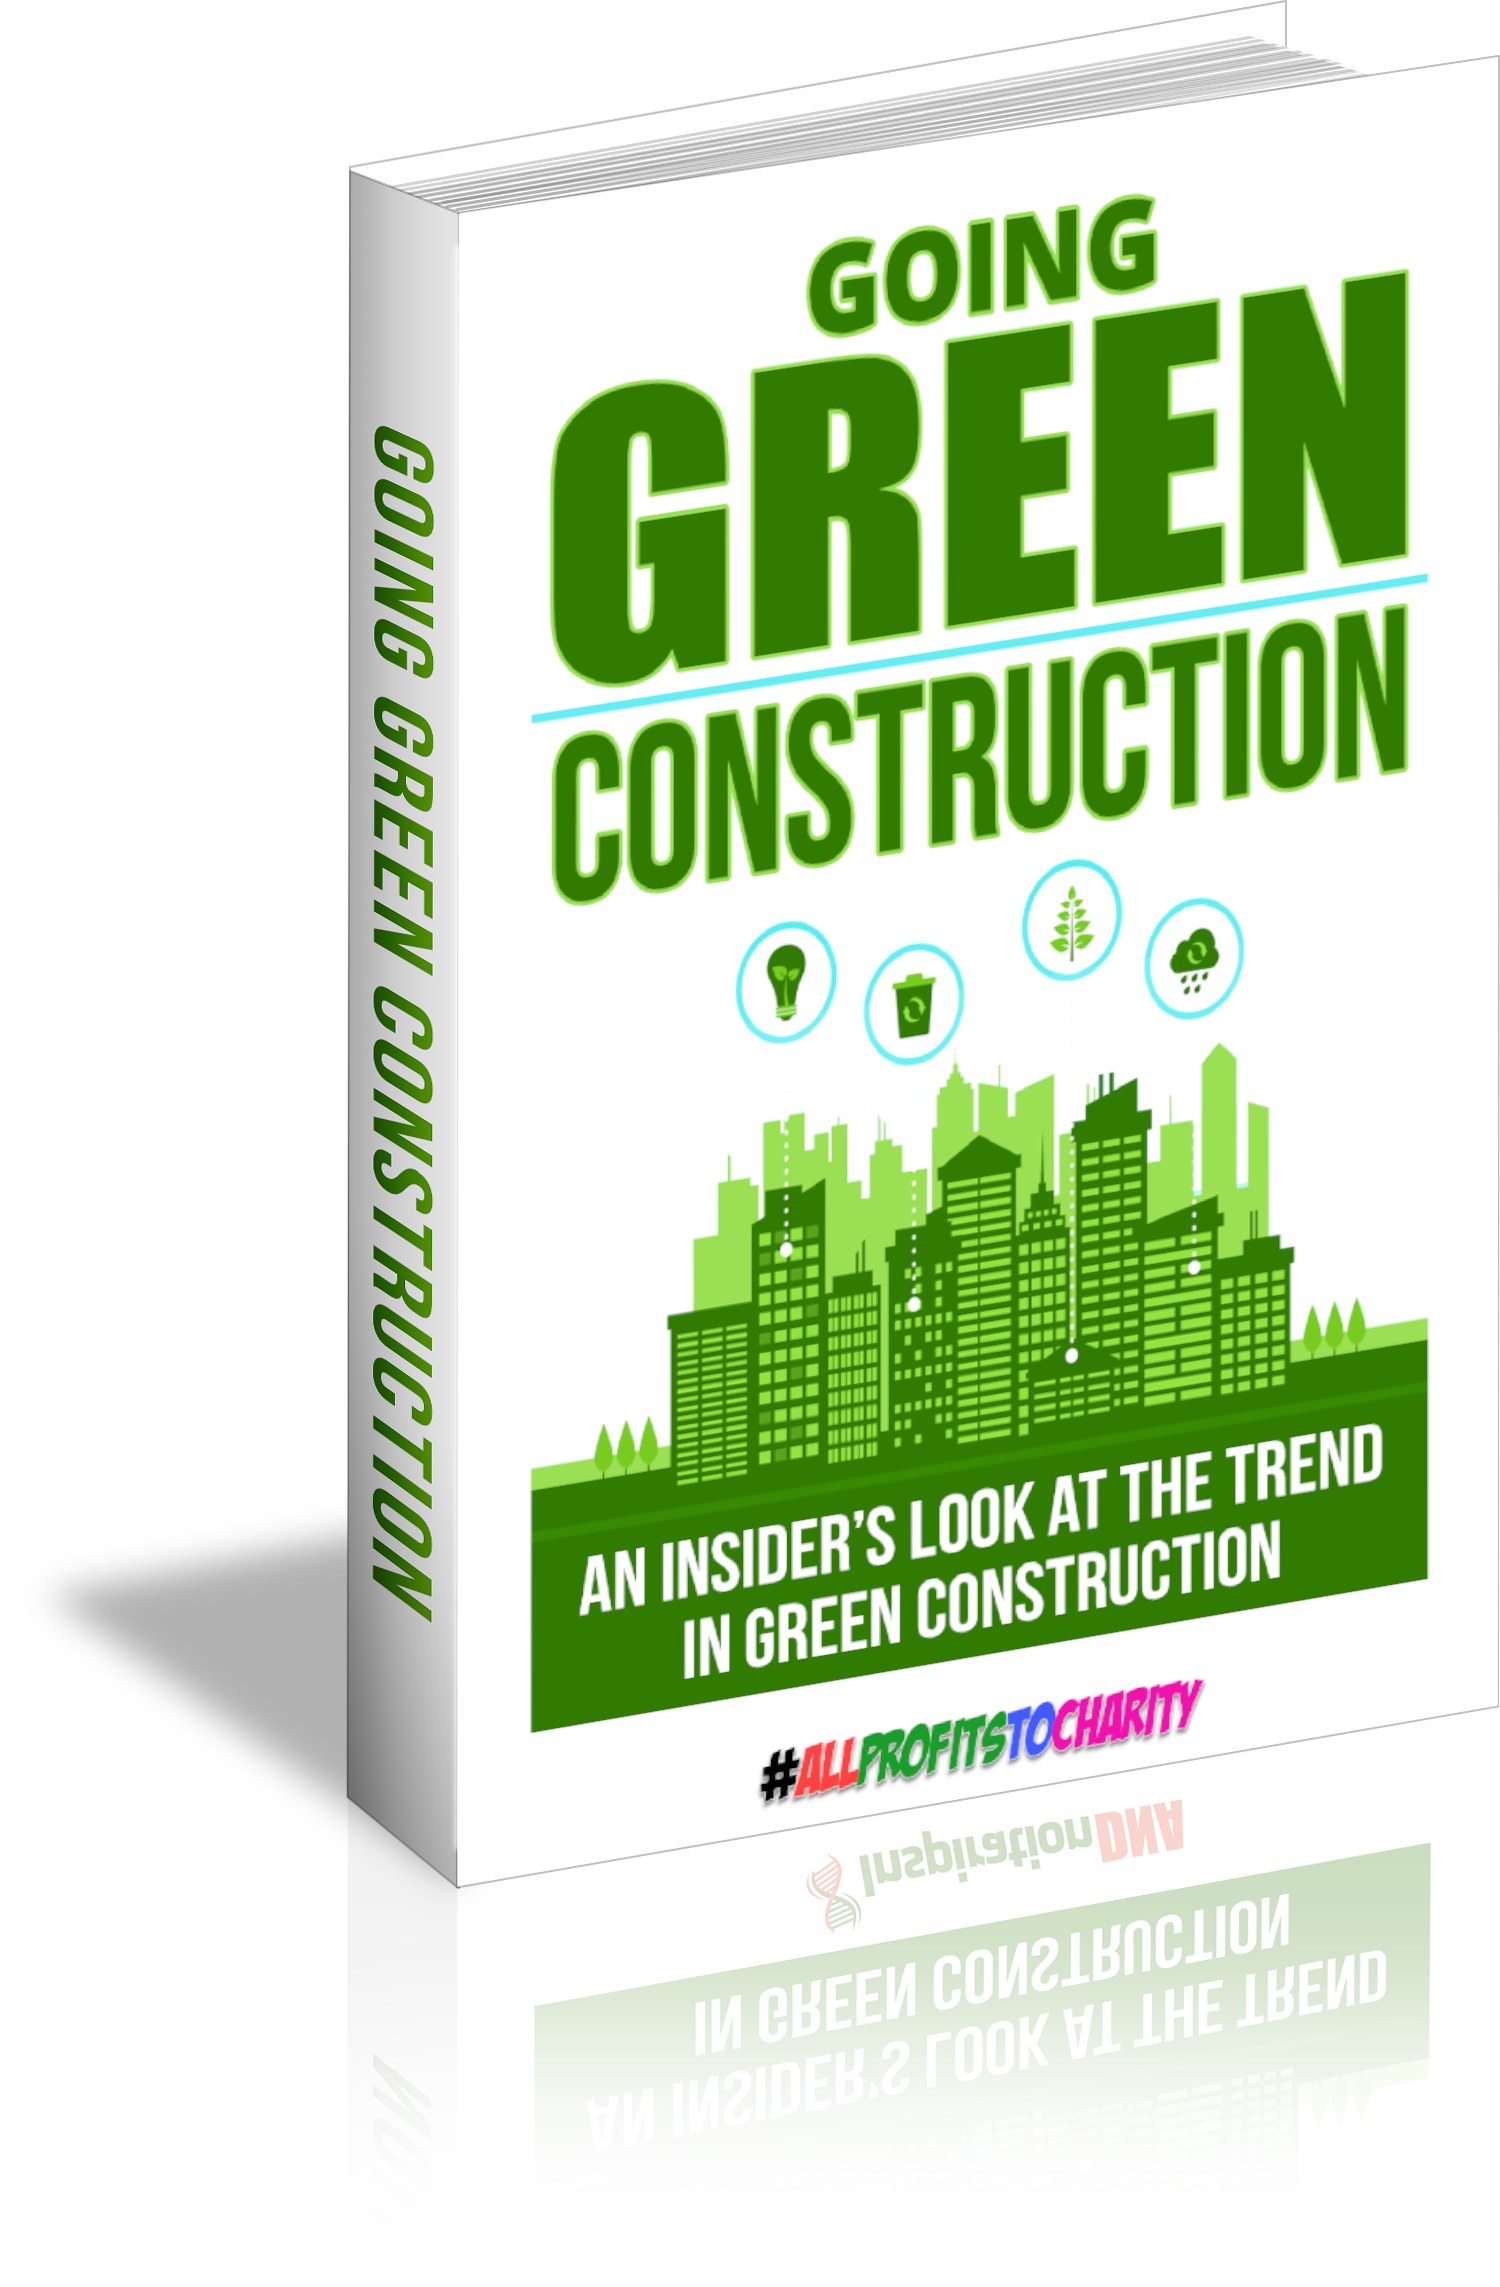 Going Green Construction cover